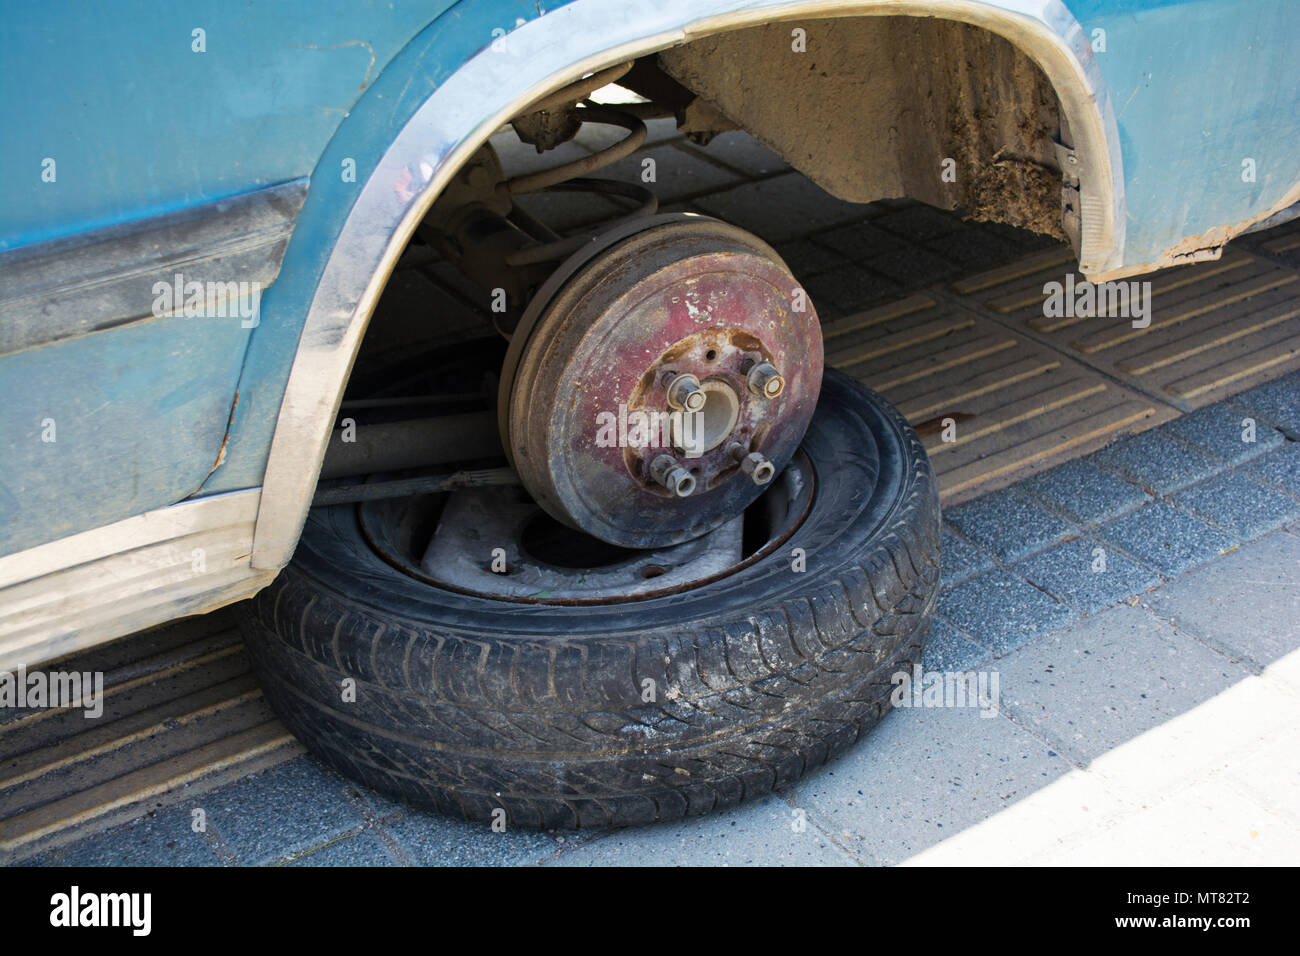 Old car waiting for the wheel. Car without tire need to be repaired. - Stock Image